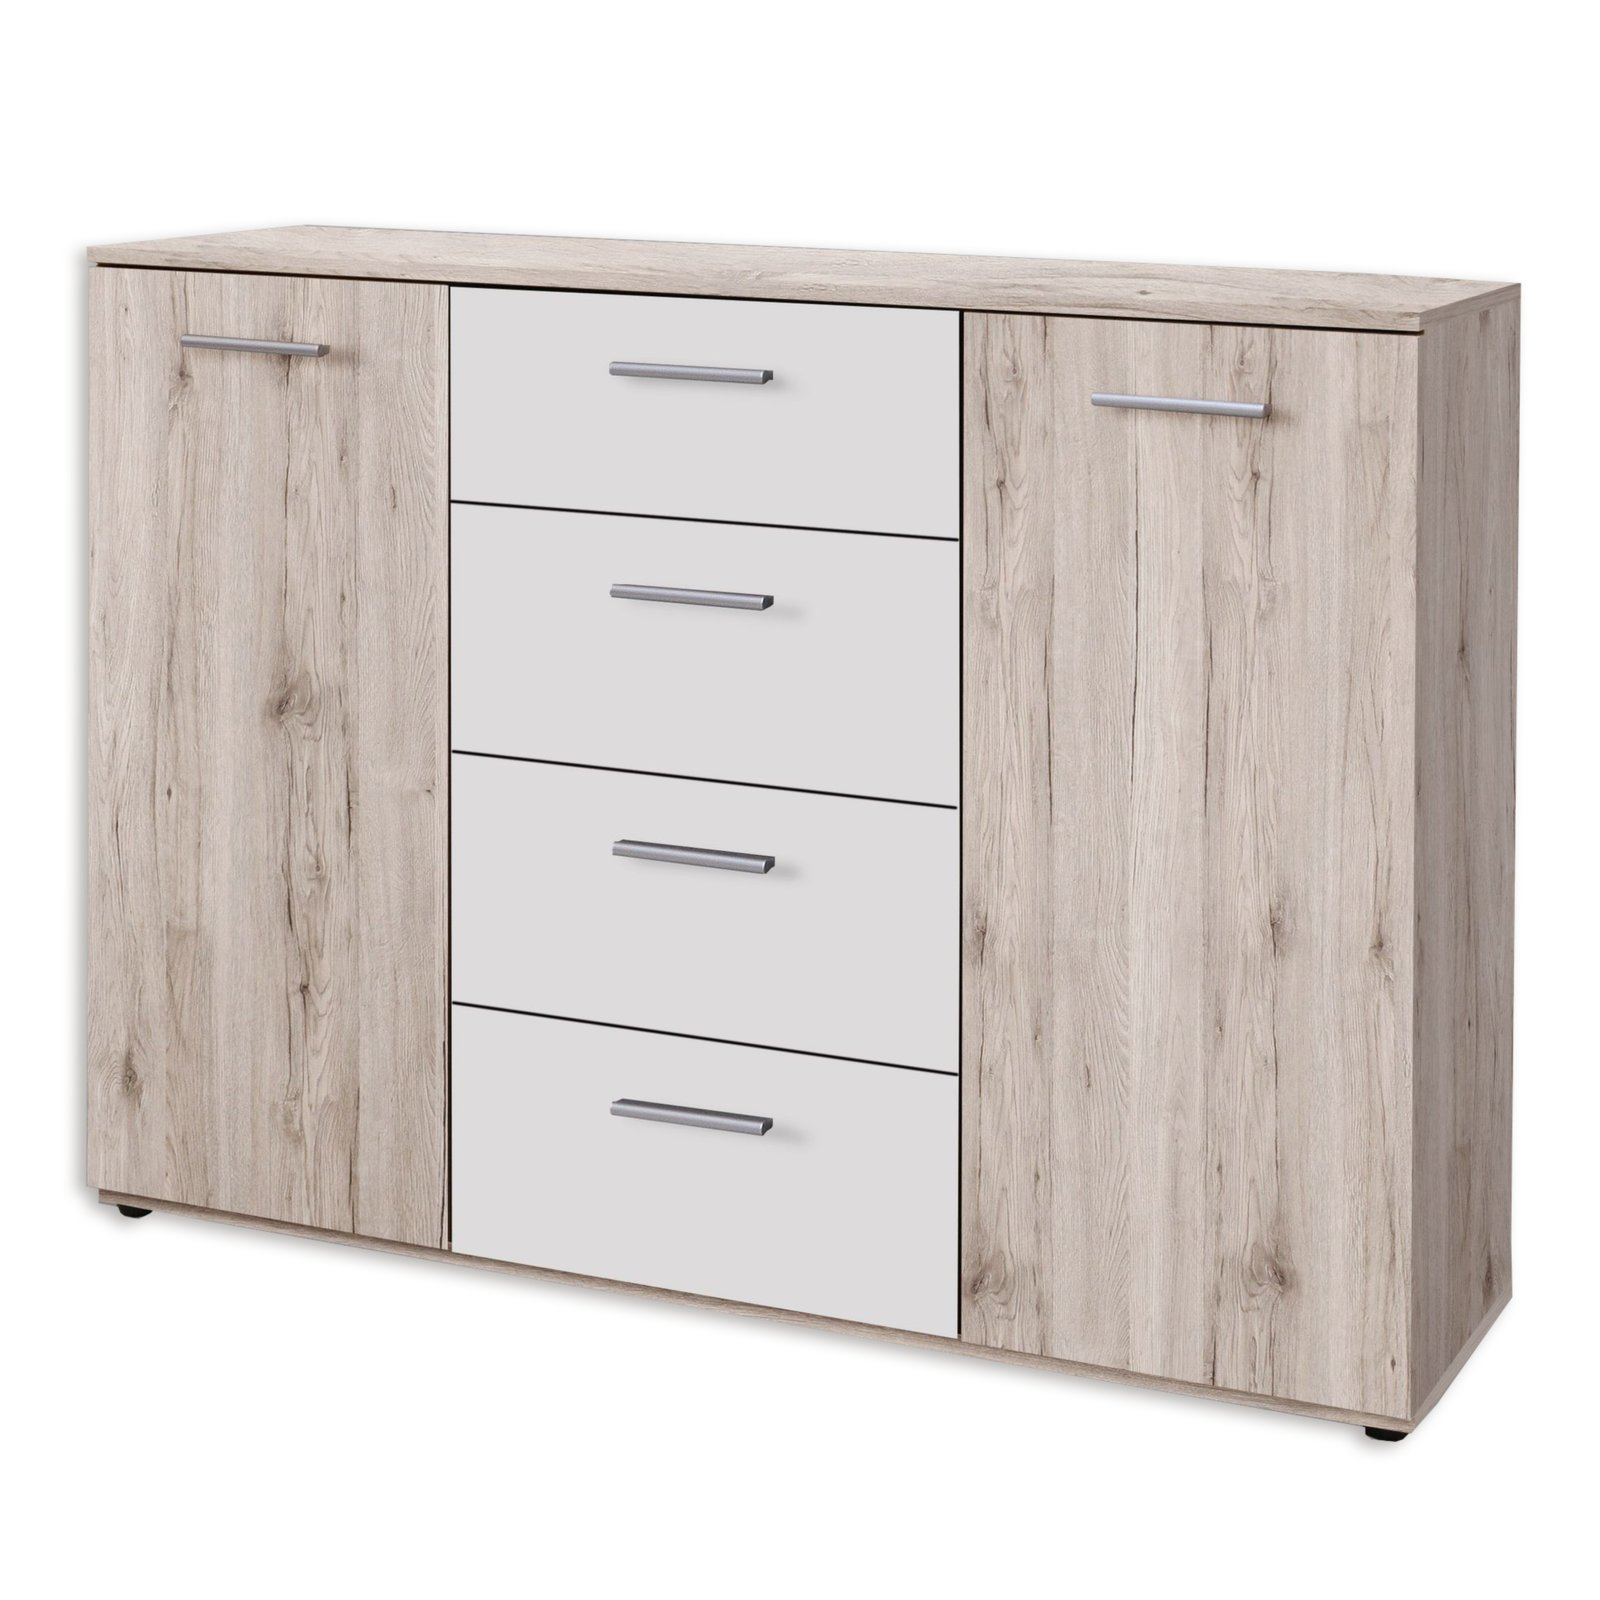 kommode beach sand eiche wei kommoden sideboards. Black Bedroom Furniture Sets. Home Design Ideas